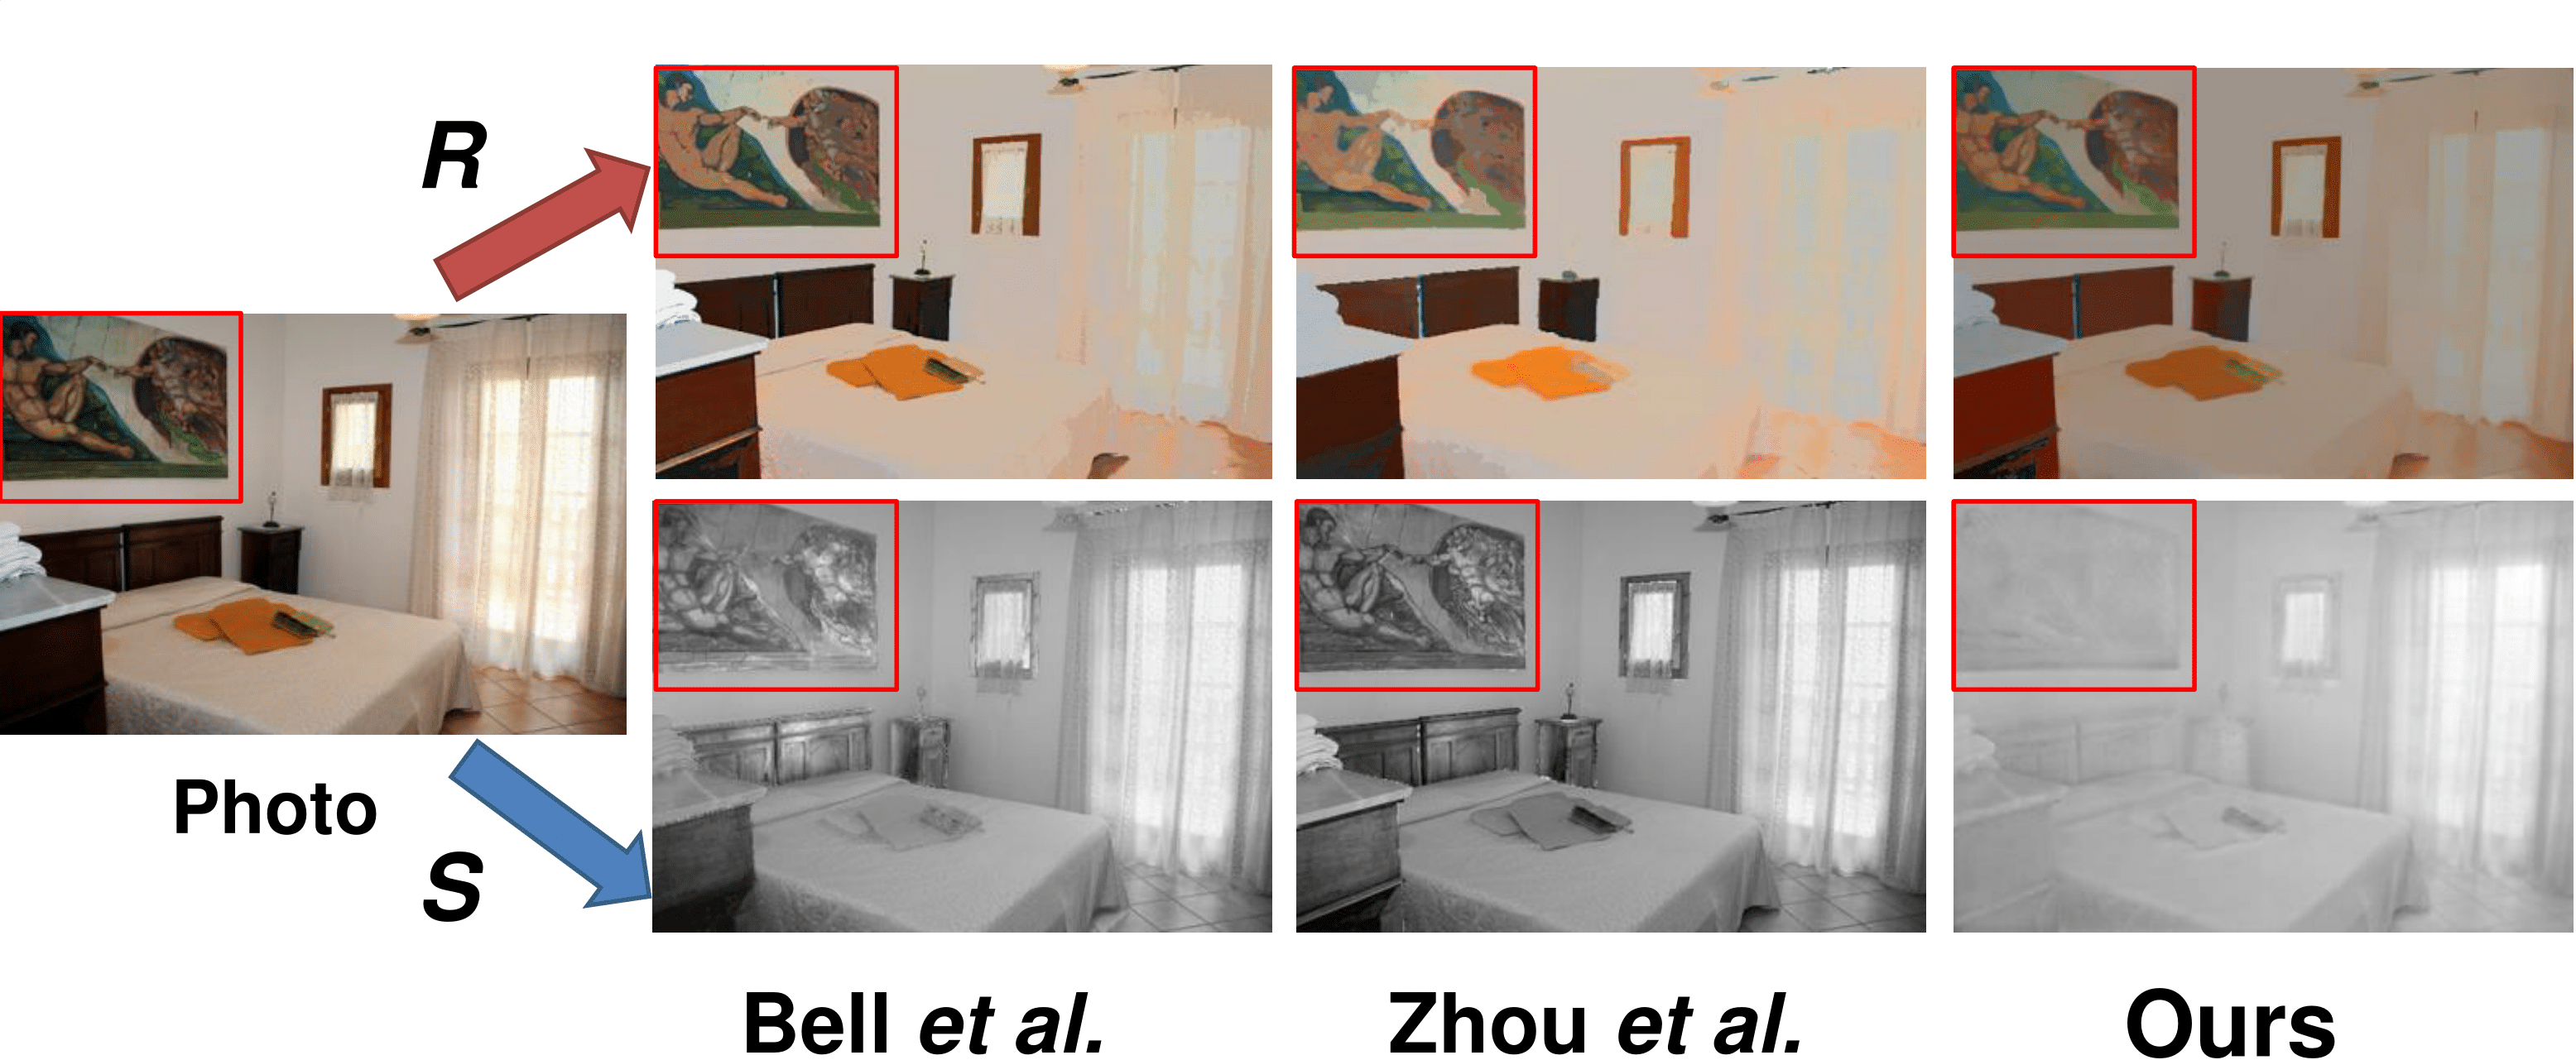 Cgintrinsics Better Intrinsic Image Decomposition Through Physically Based Rendering